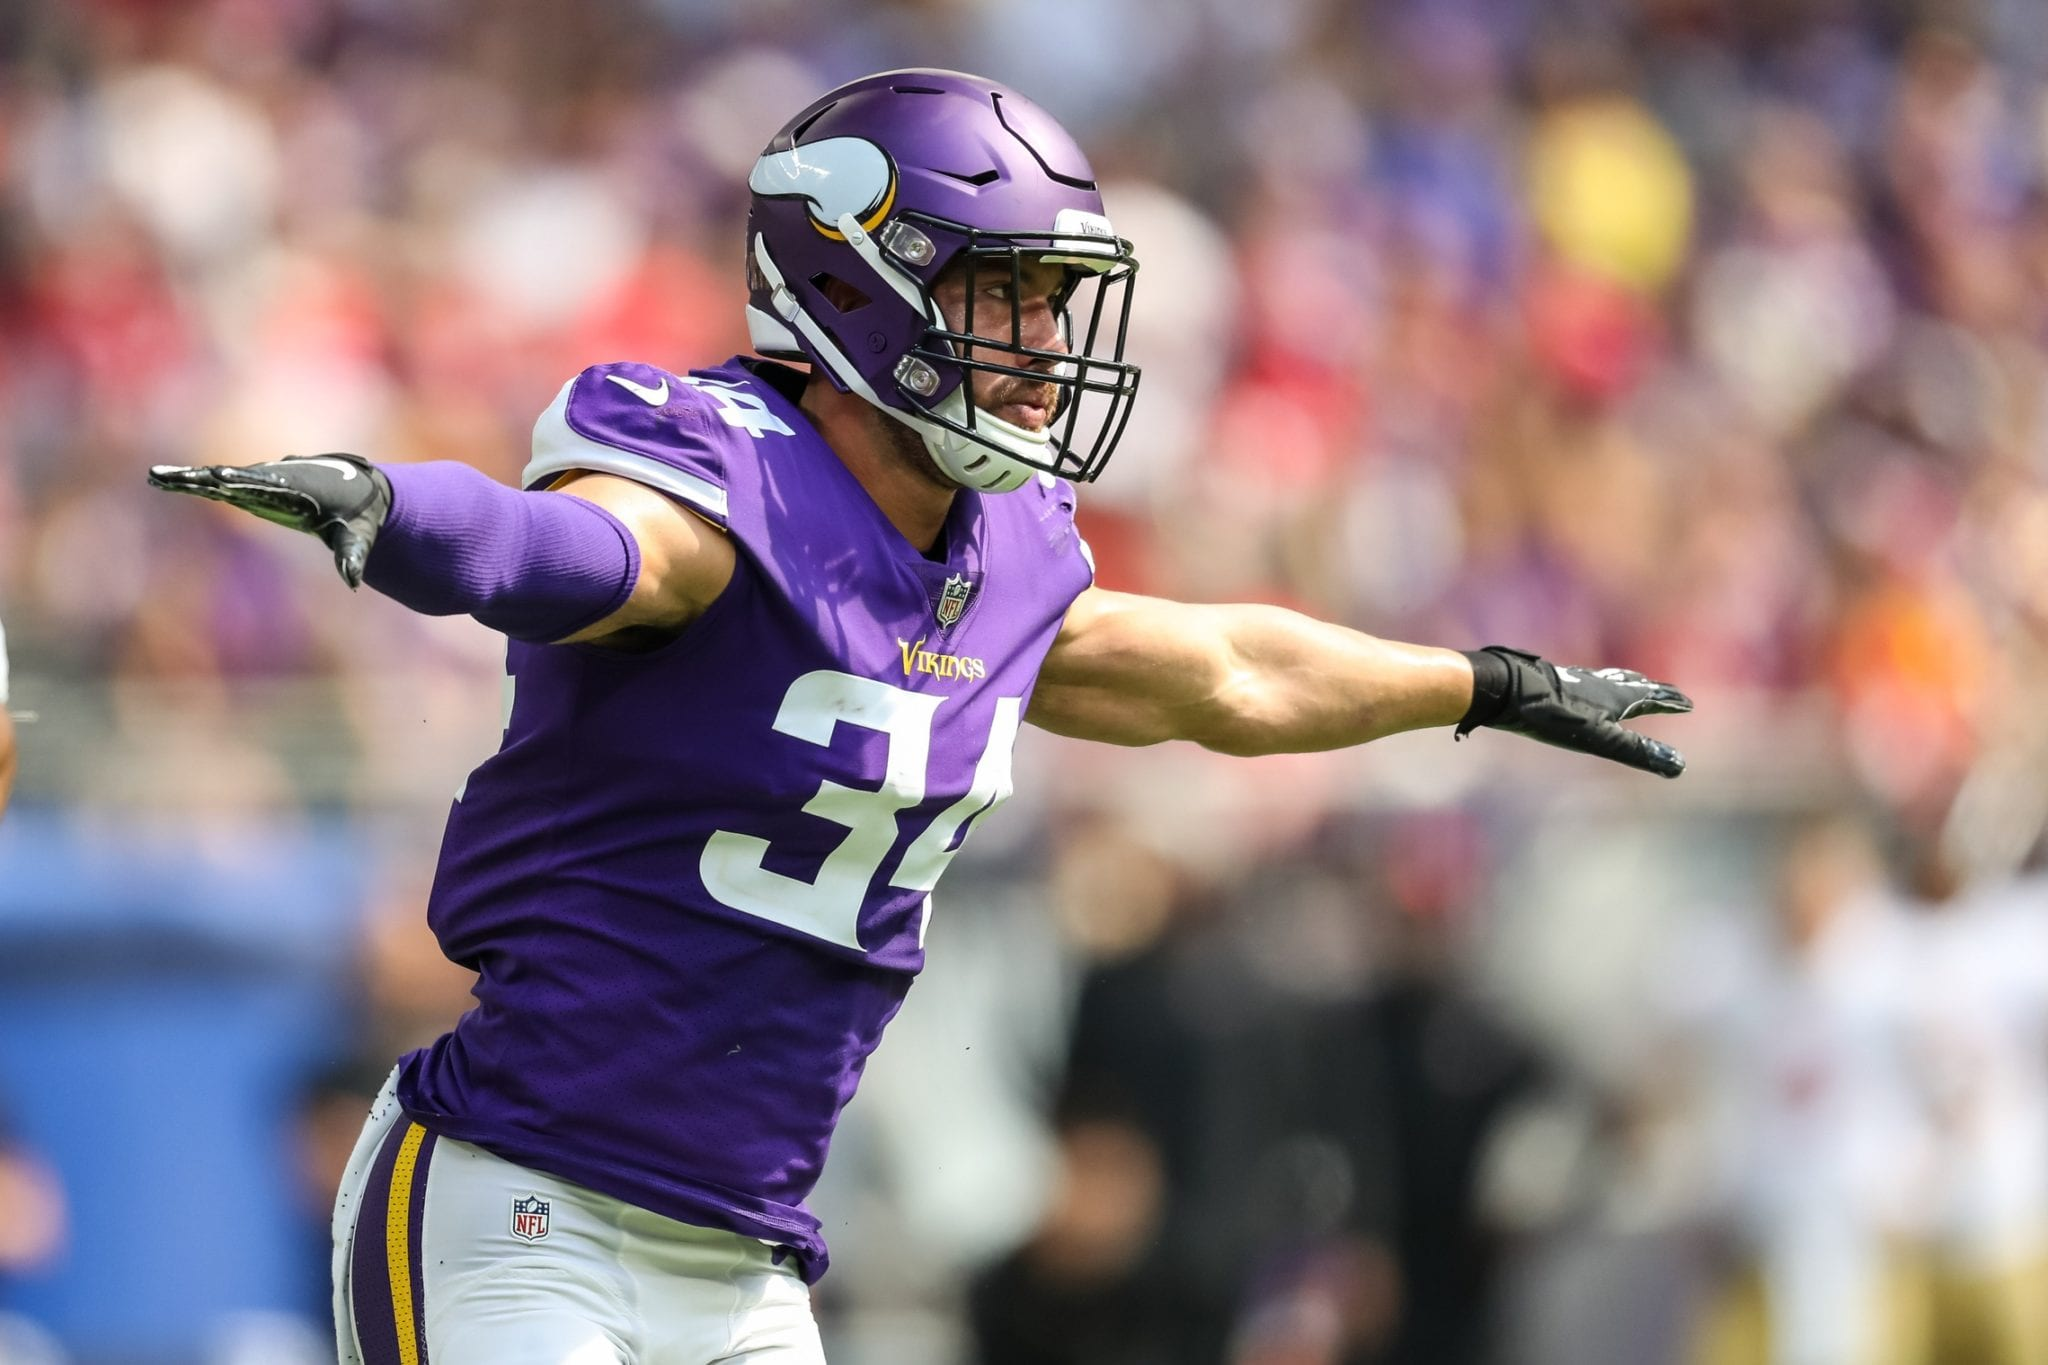 d558257b8 Eagles Signing S Andrew Sendejo To One-Year Deal